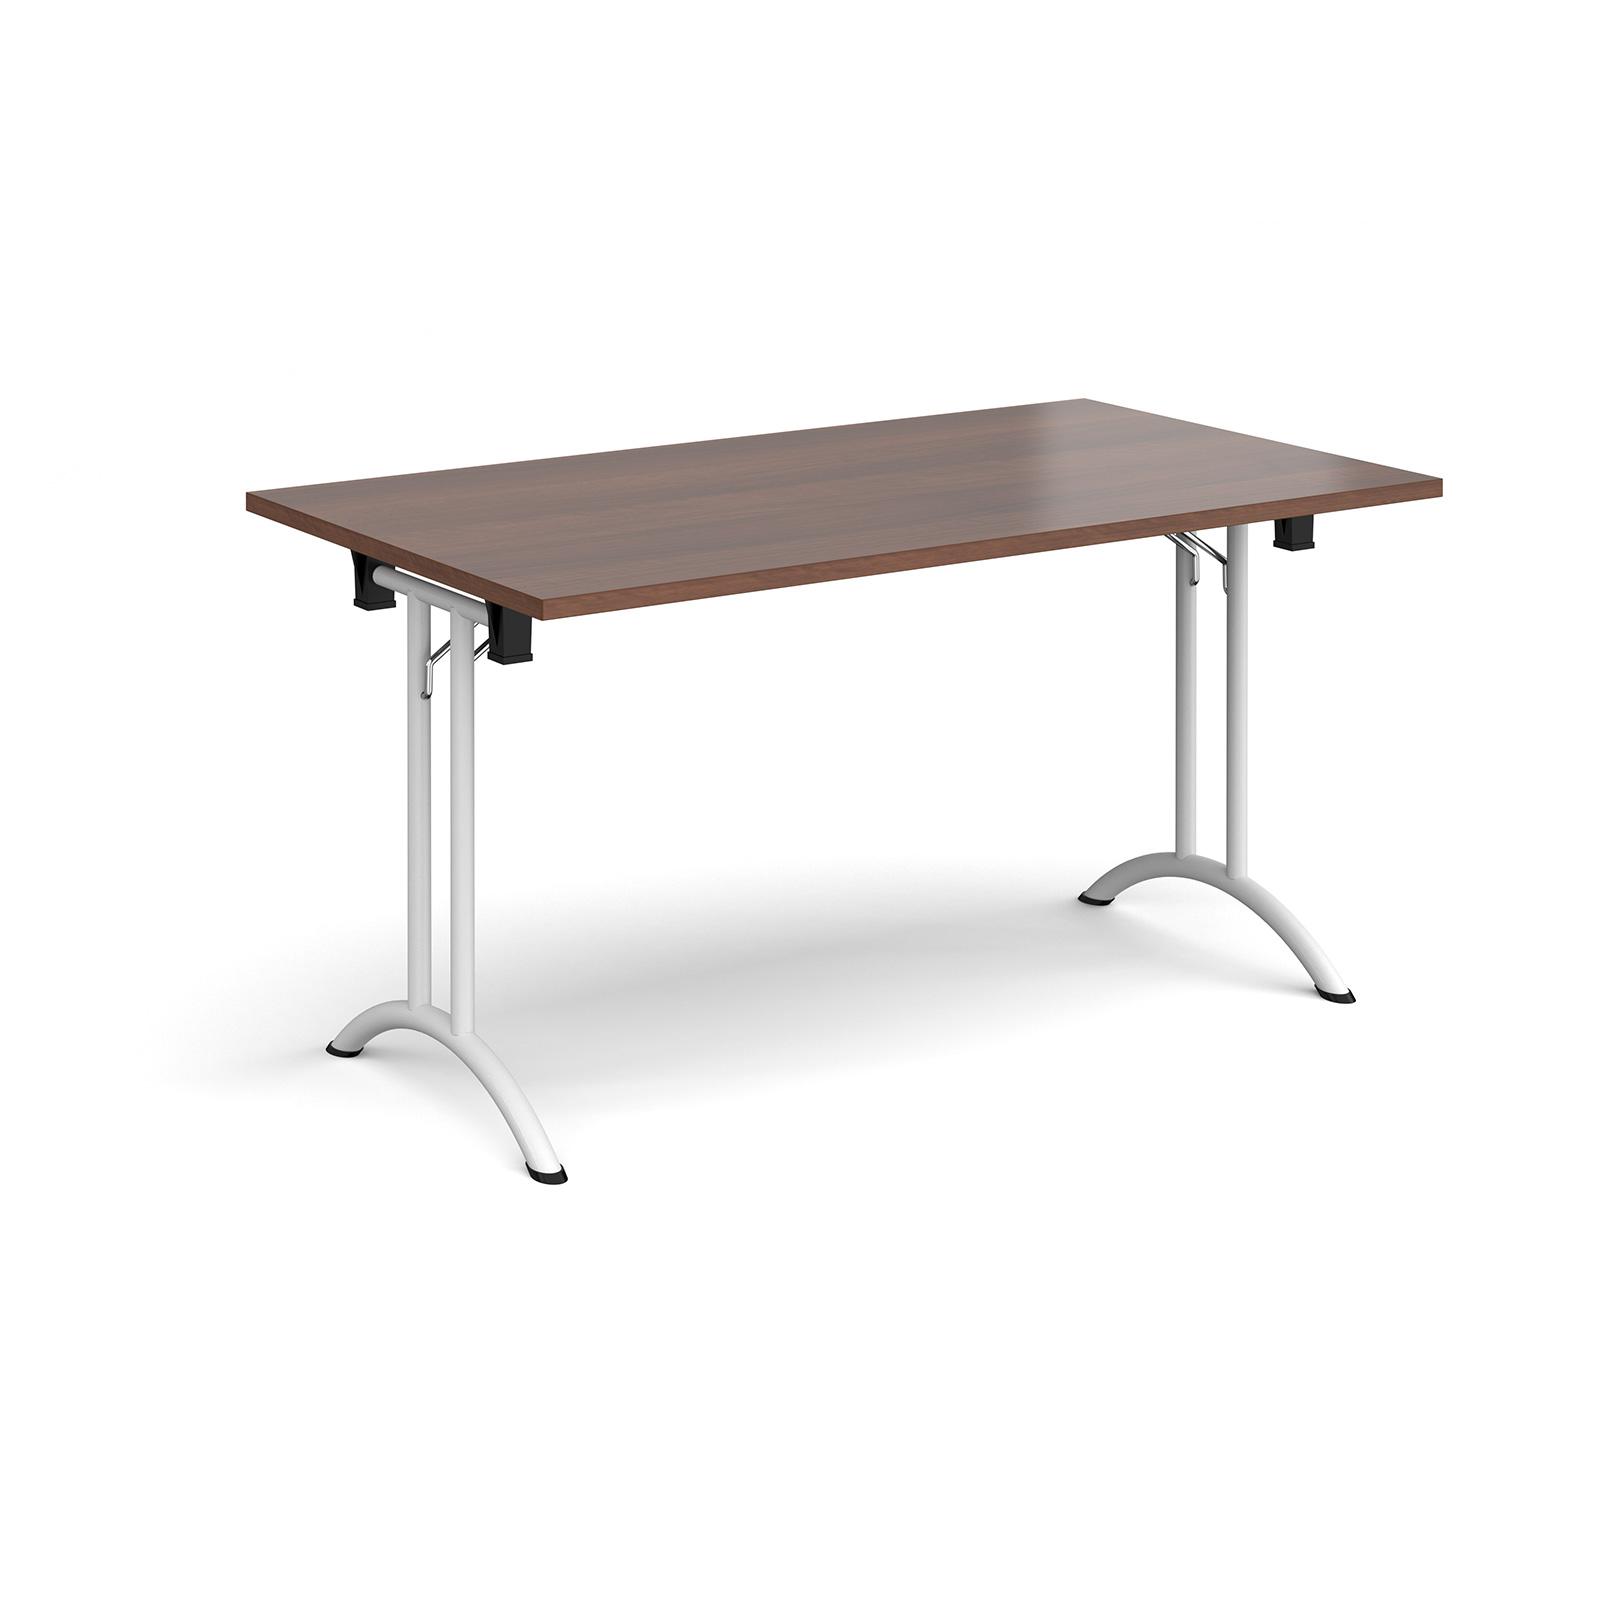 Rectangular Folding Leg Table With White And Curved Foot Rails 1400mm X 800mm Walnut